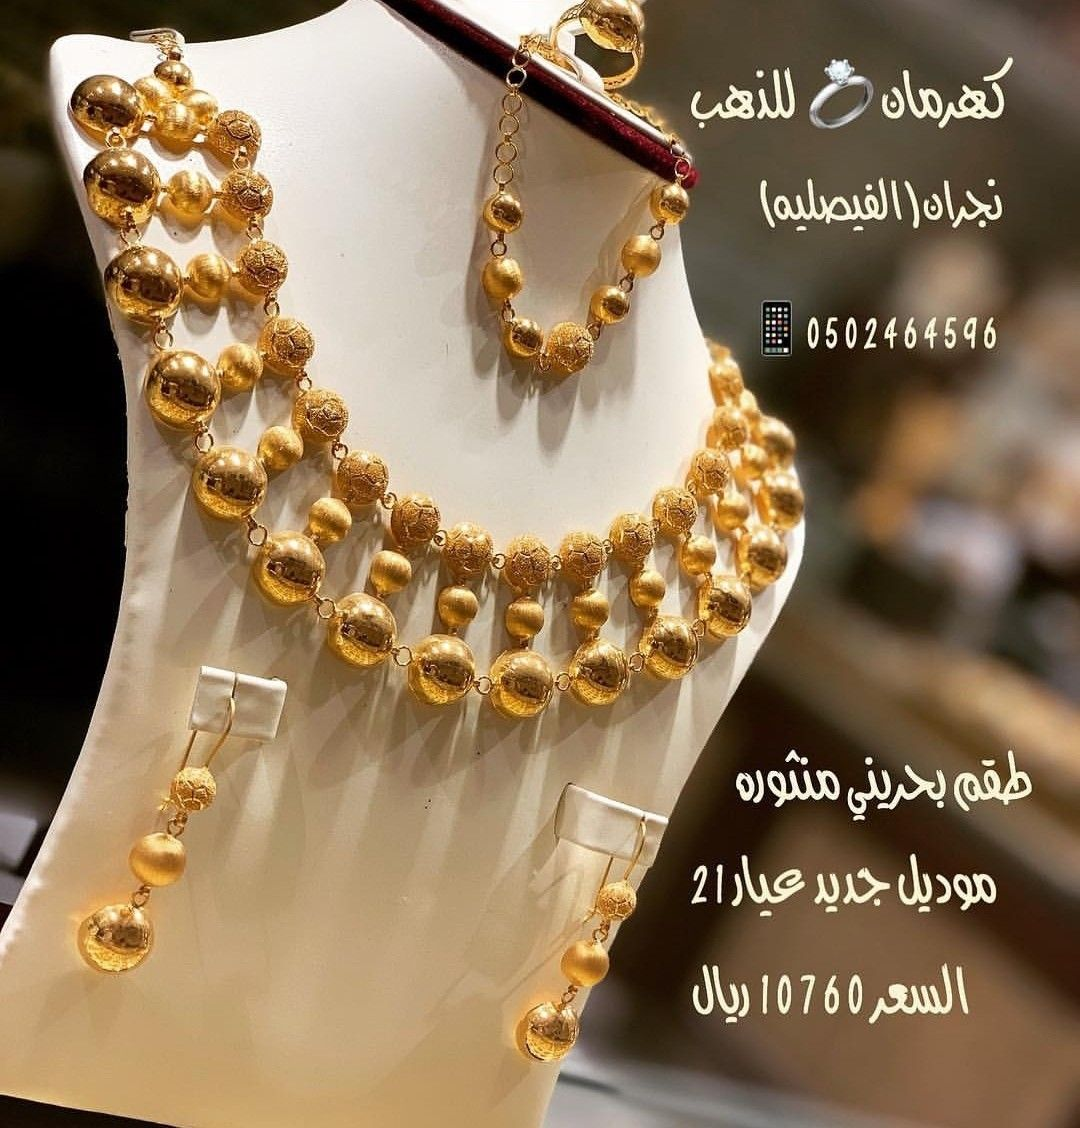 Pin By Princess Of Sambrial6282 On Gold الذھب Gold Earrings Designs Gold Necklace Designs Necklace Designs